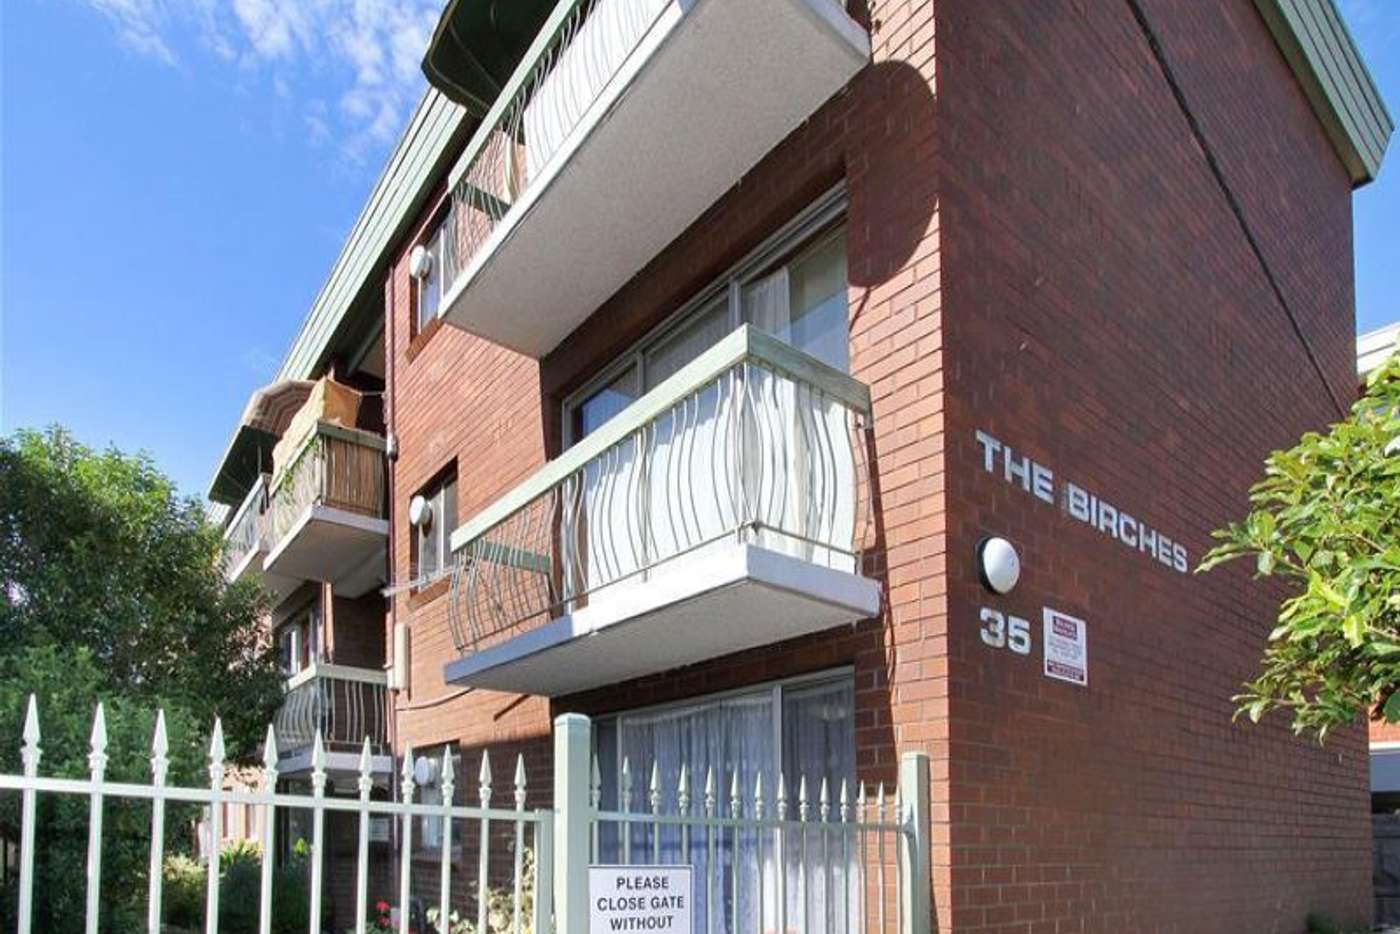 Main view of Homely apartment listing, 1/35 Staley Street, Brunswick VIC 3056